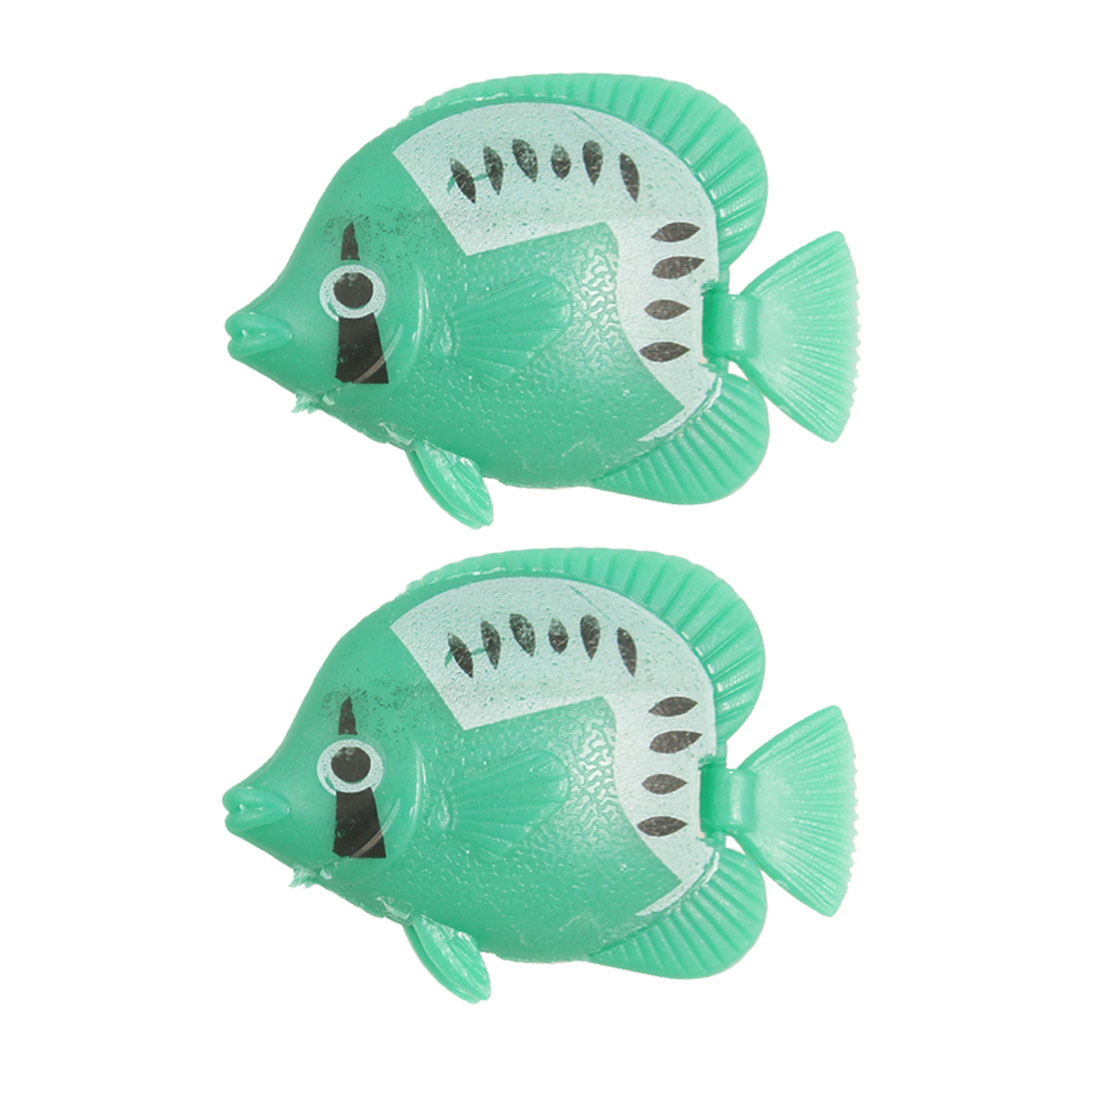 2 Pcs Green Plastic Simulation Fish for Aquarium Ornament